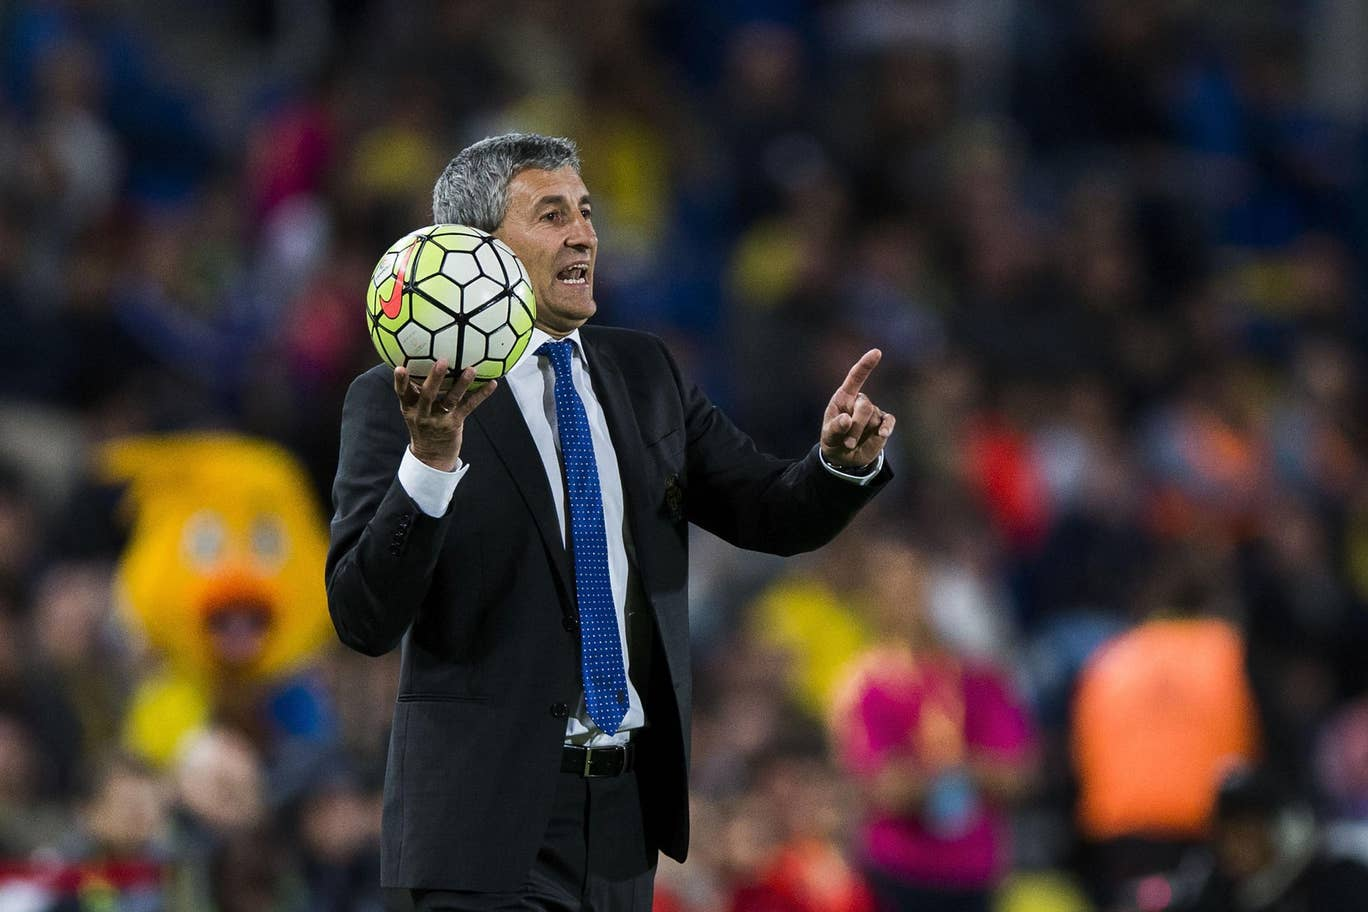 FC Barcelona's newly appointed manager, Quique Setién / GETTY IMAGES